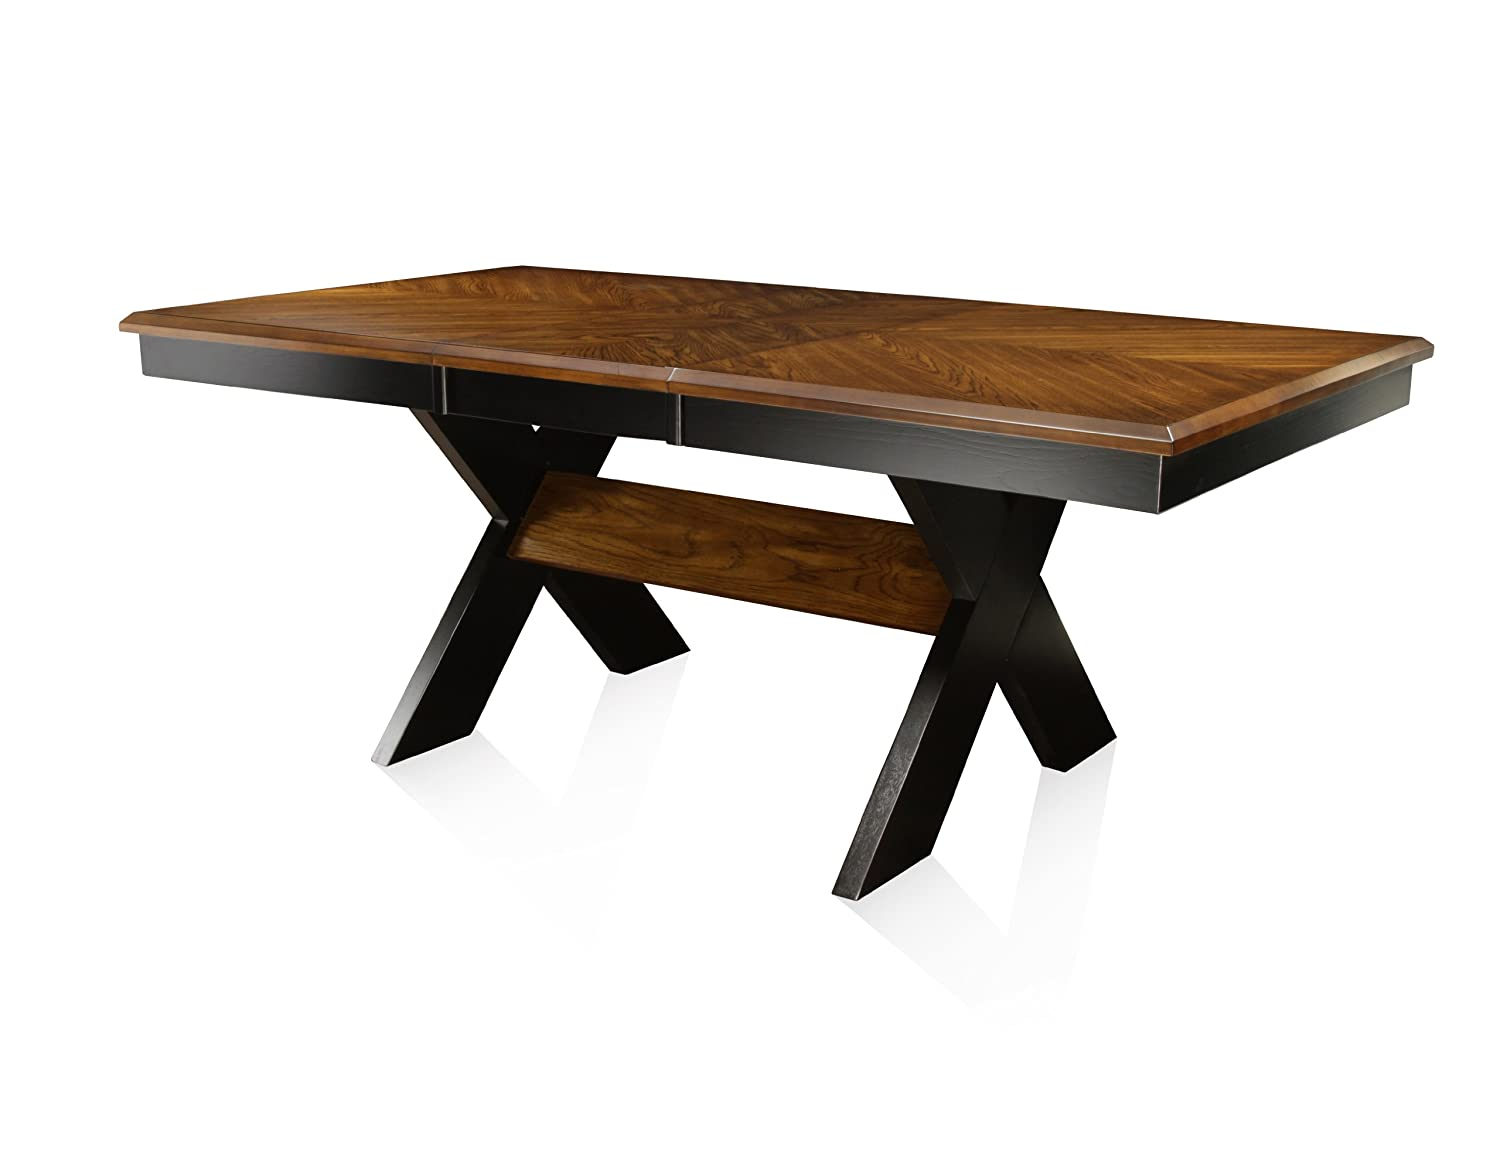 fbed97274212e Amazon.com - Furniture of America Harvest Rectangular Dining Table with  18-Inch Leaf Extension